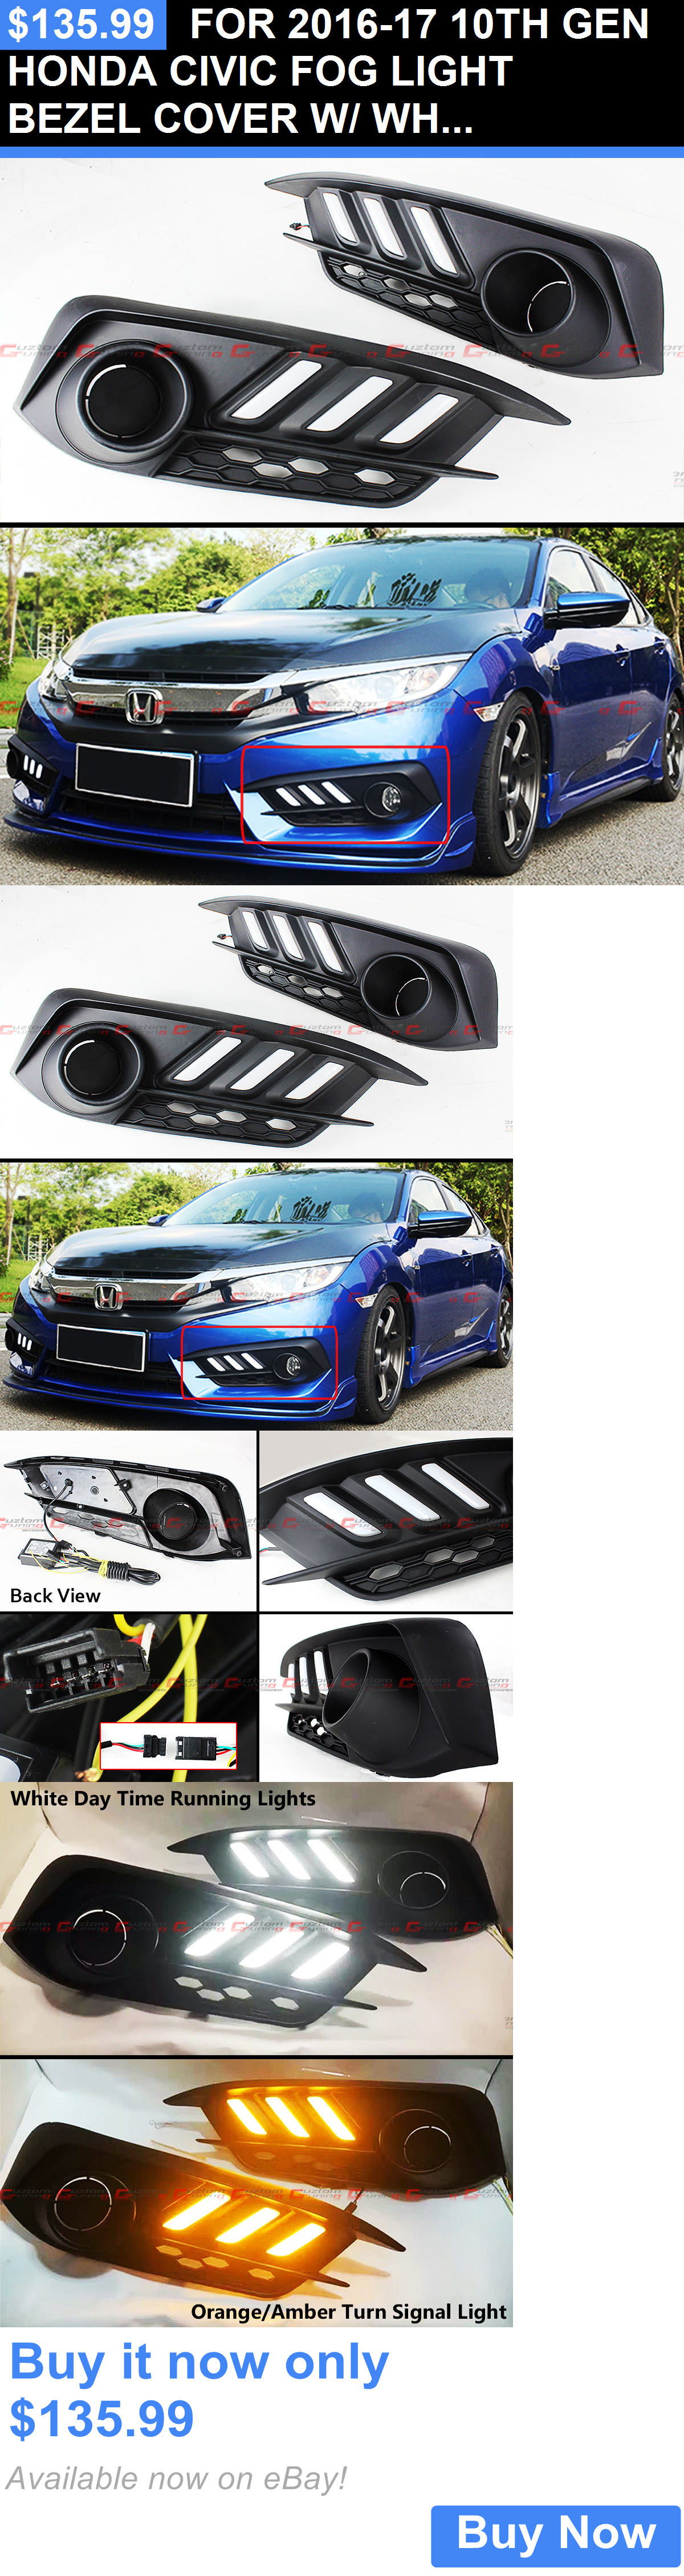 accessories honda at sport andy s auto civic parts